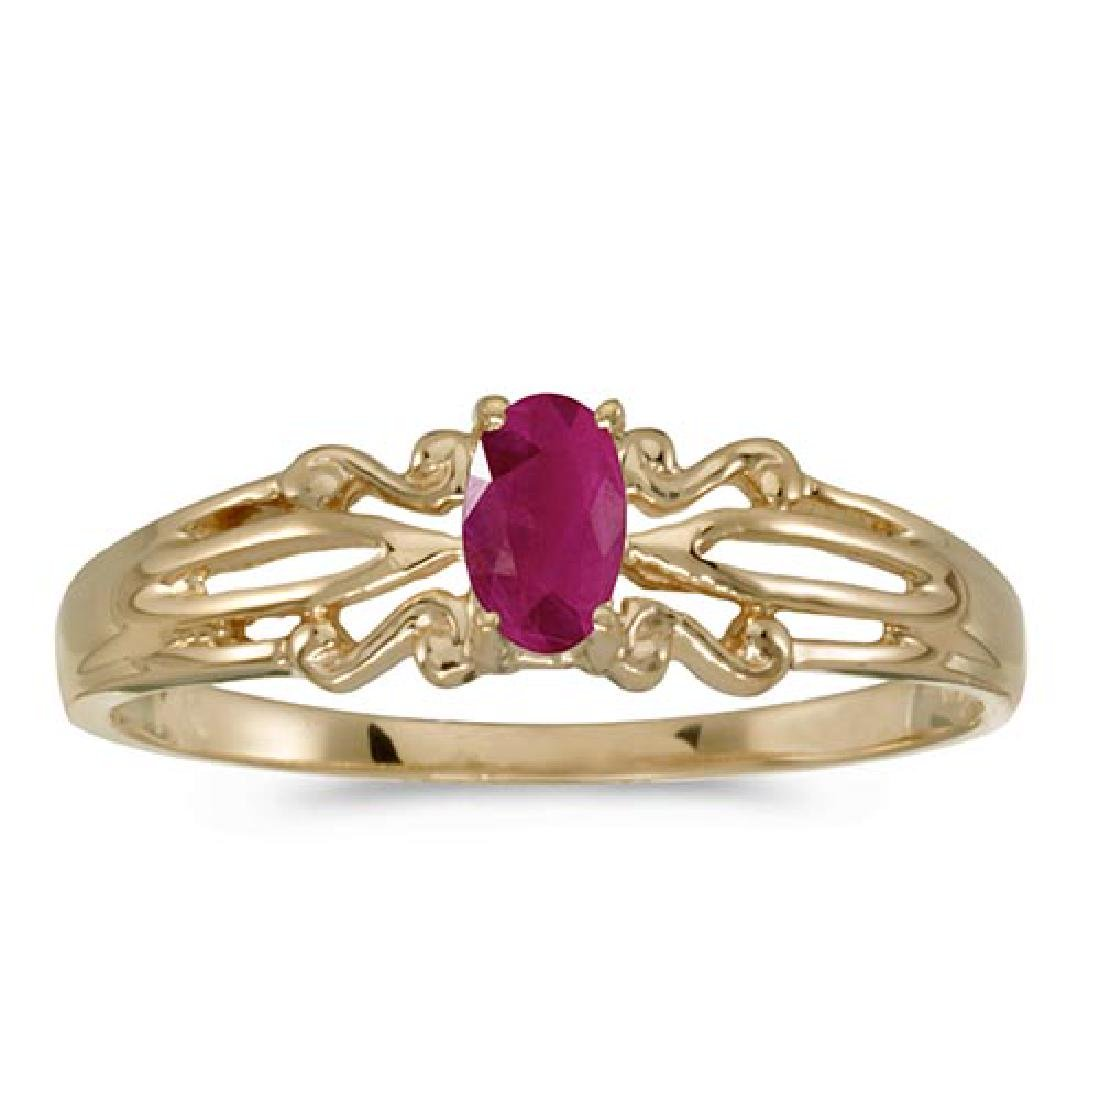 Certified 14k Yellow Gold Oval Ruby Ring